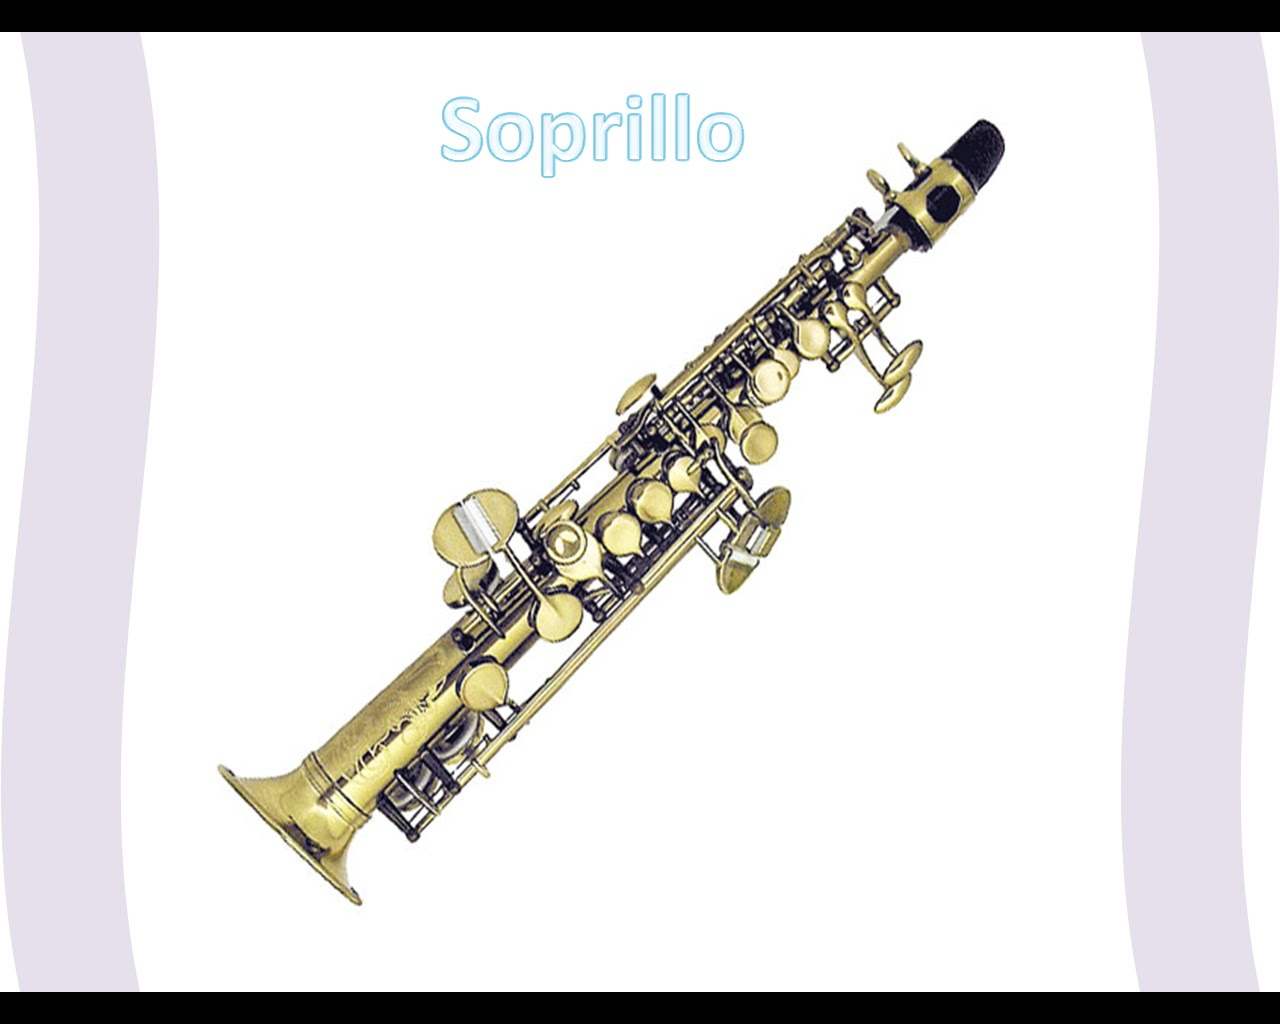 The Sopranissimo or Soprillo | All about Saxophones